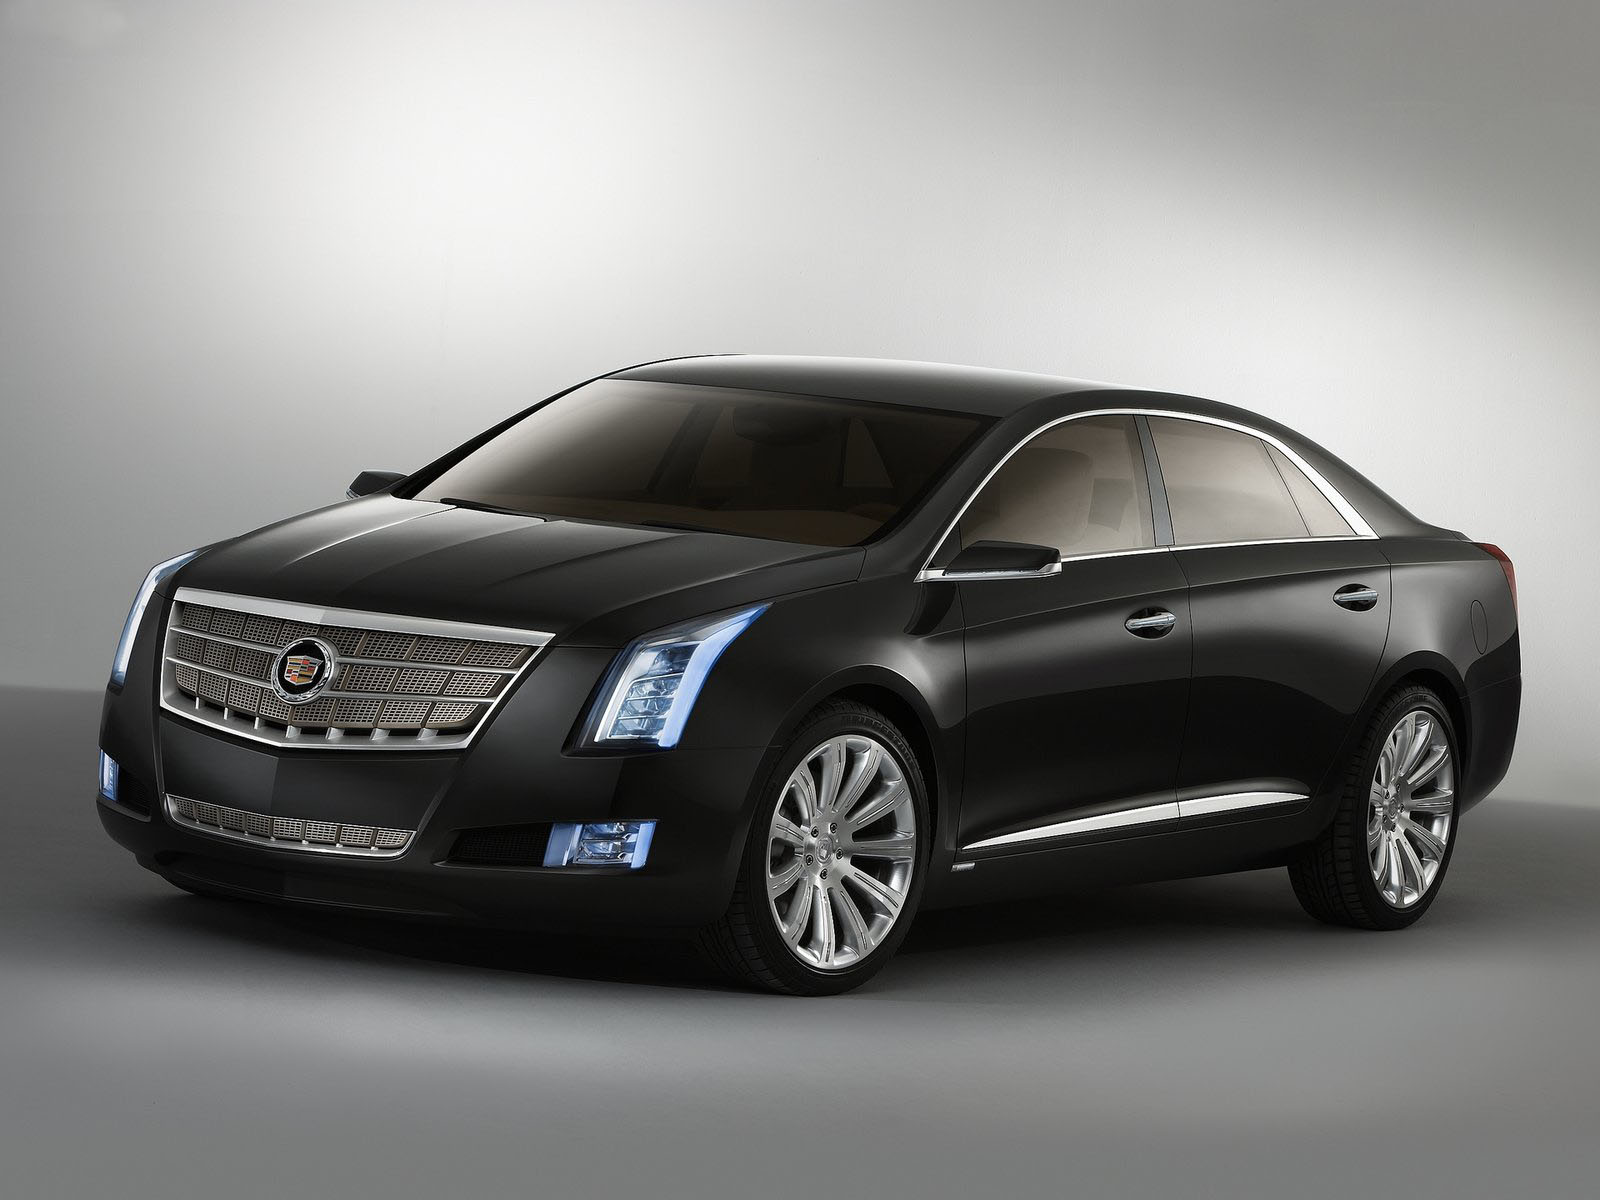 2010 cadillac xts platinum concept auto cars concept. Black Bedroom Furniture Sets. Home Design Ideas